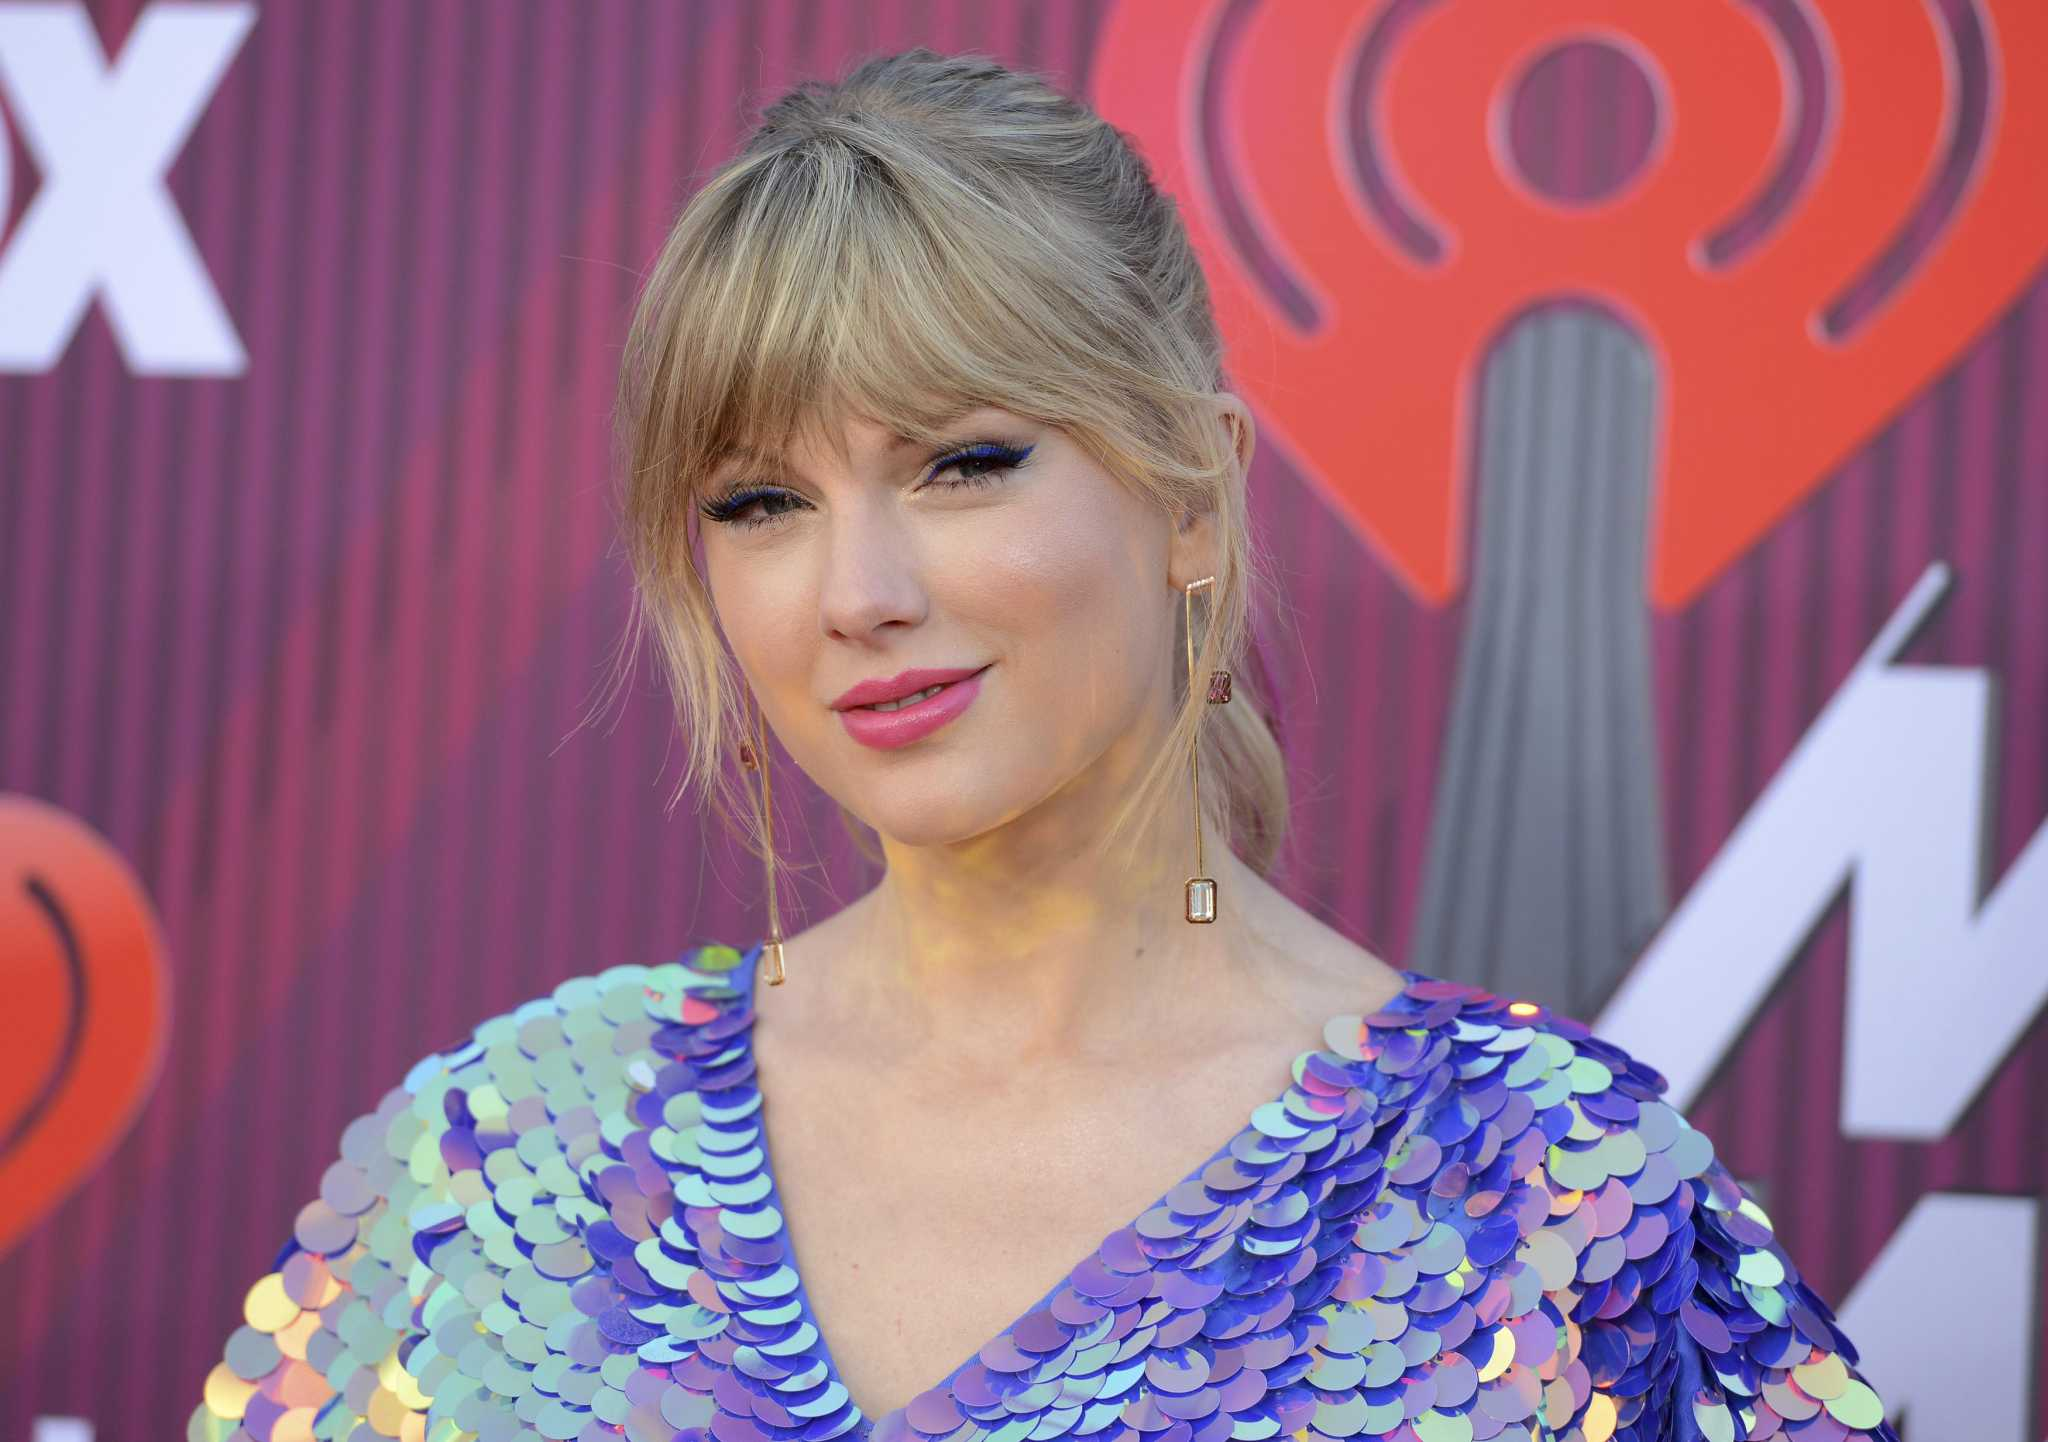 Taylor Swift says Beto O'Rourke's senate run inspired new song